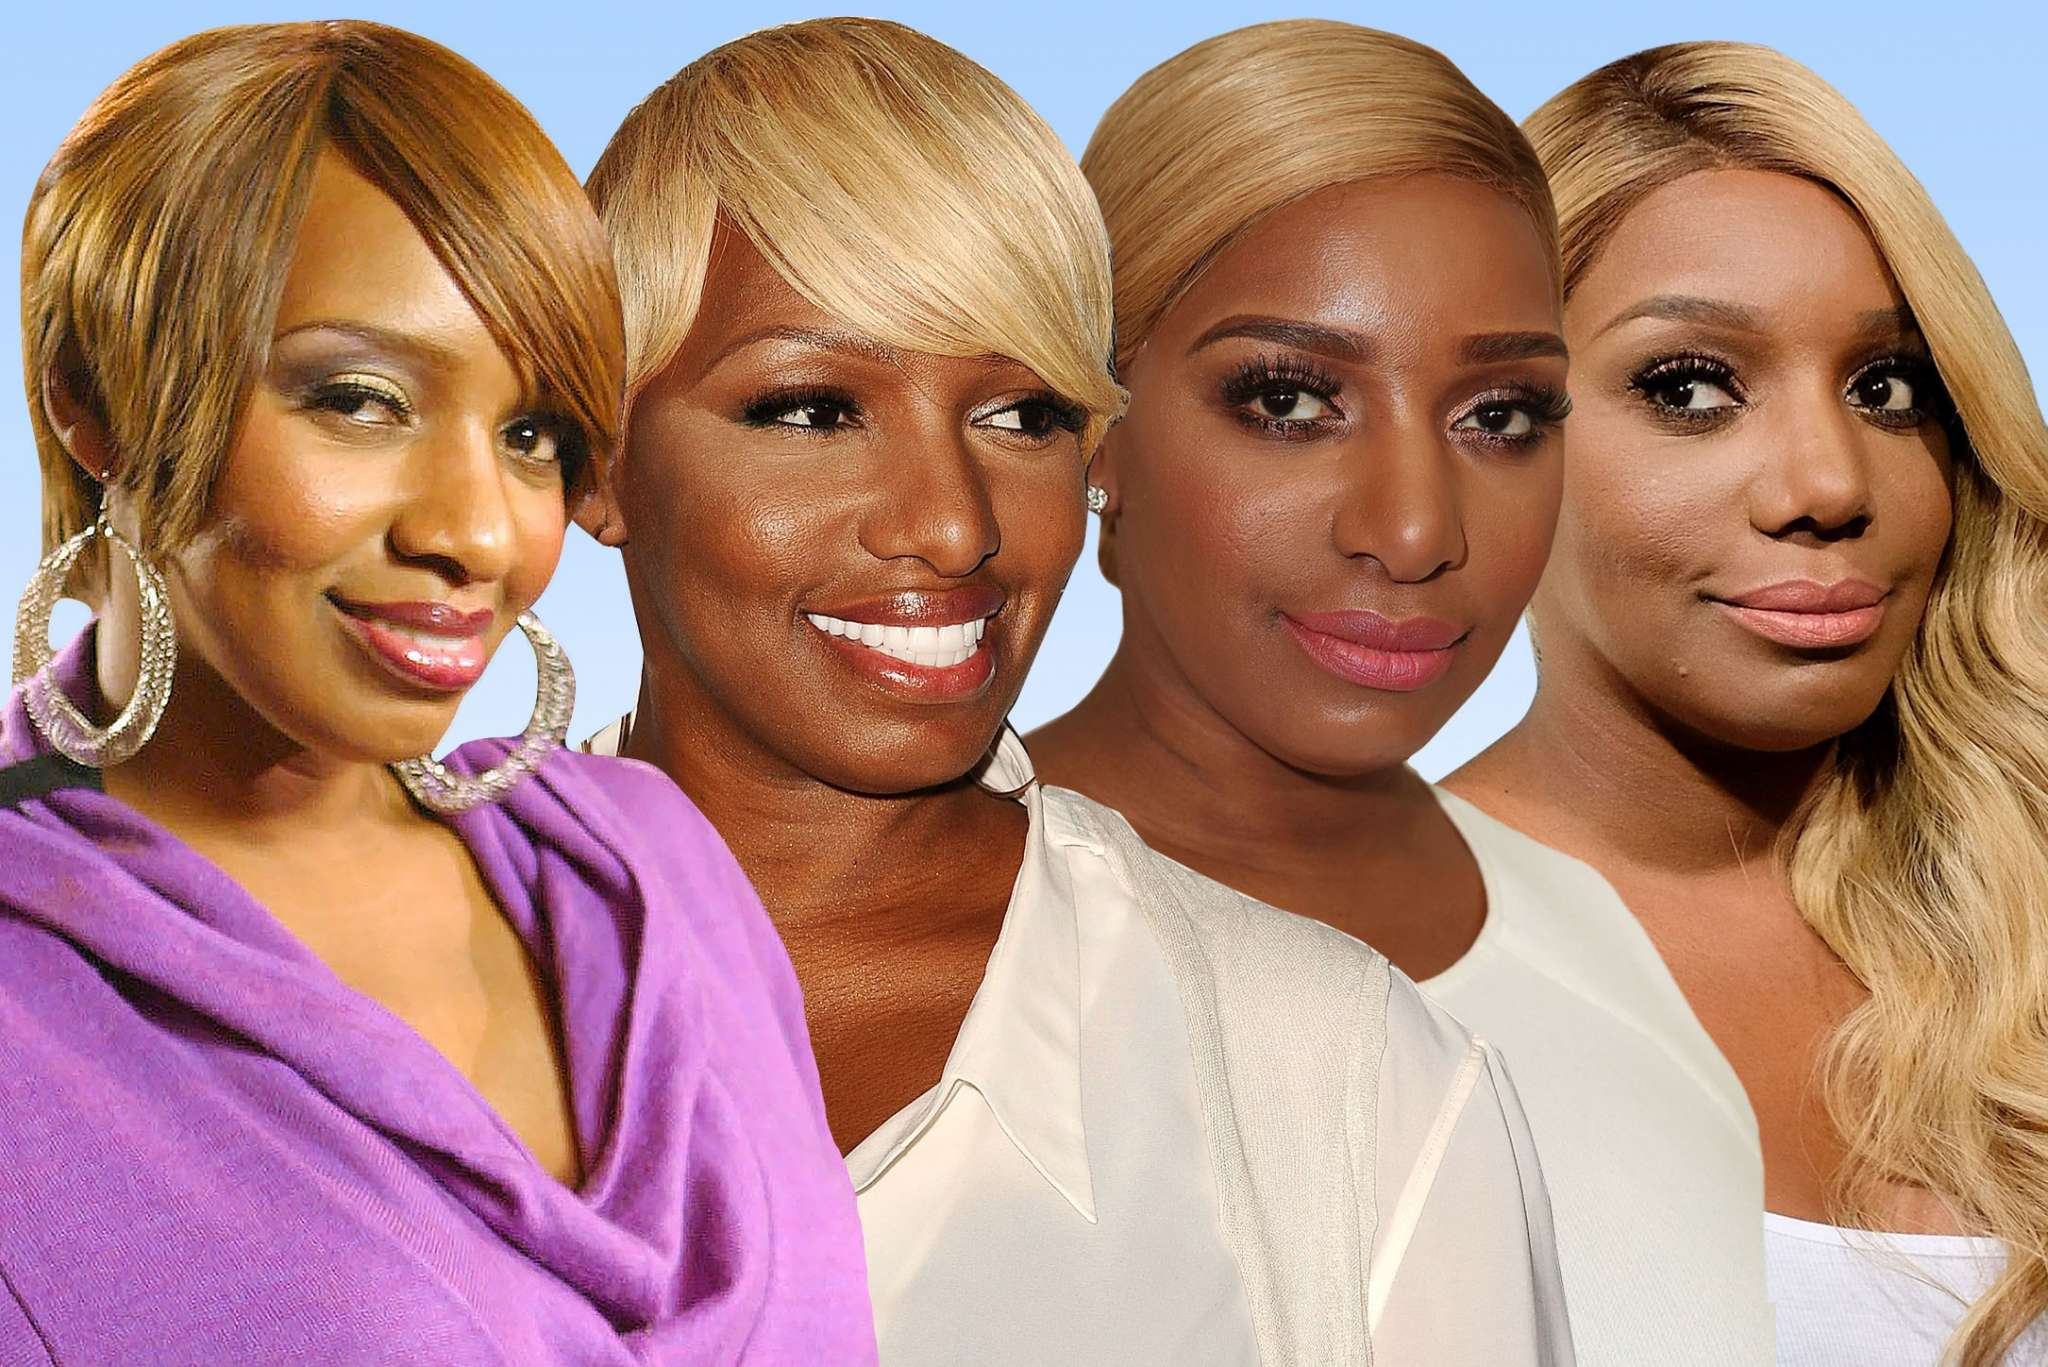 """nene-leakes-latest-photos-have-fans-saying-she-looks-incredible-the-nose-has-given-you-so-much-confidence"""